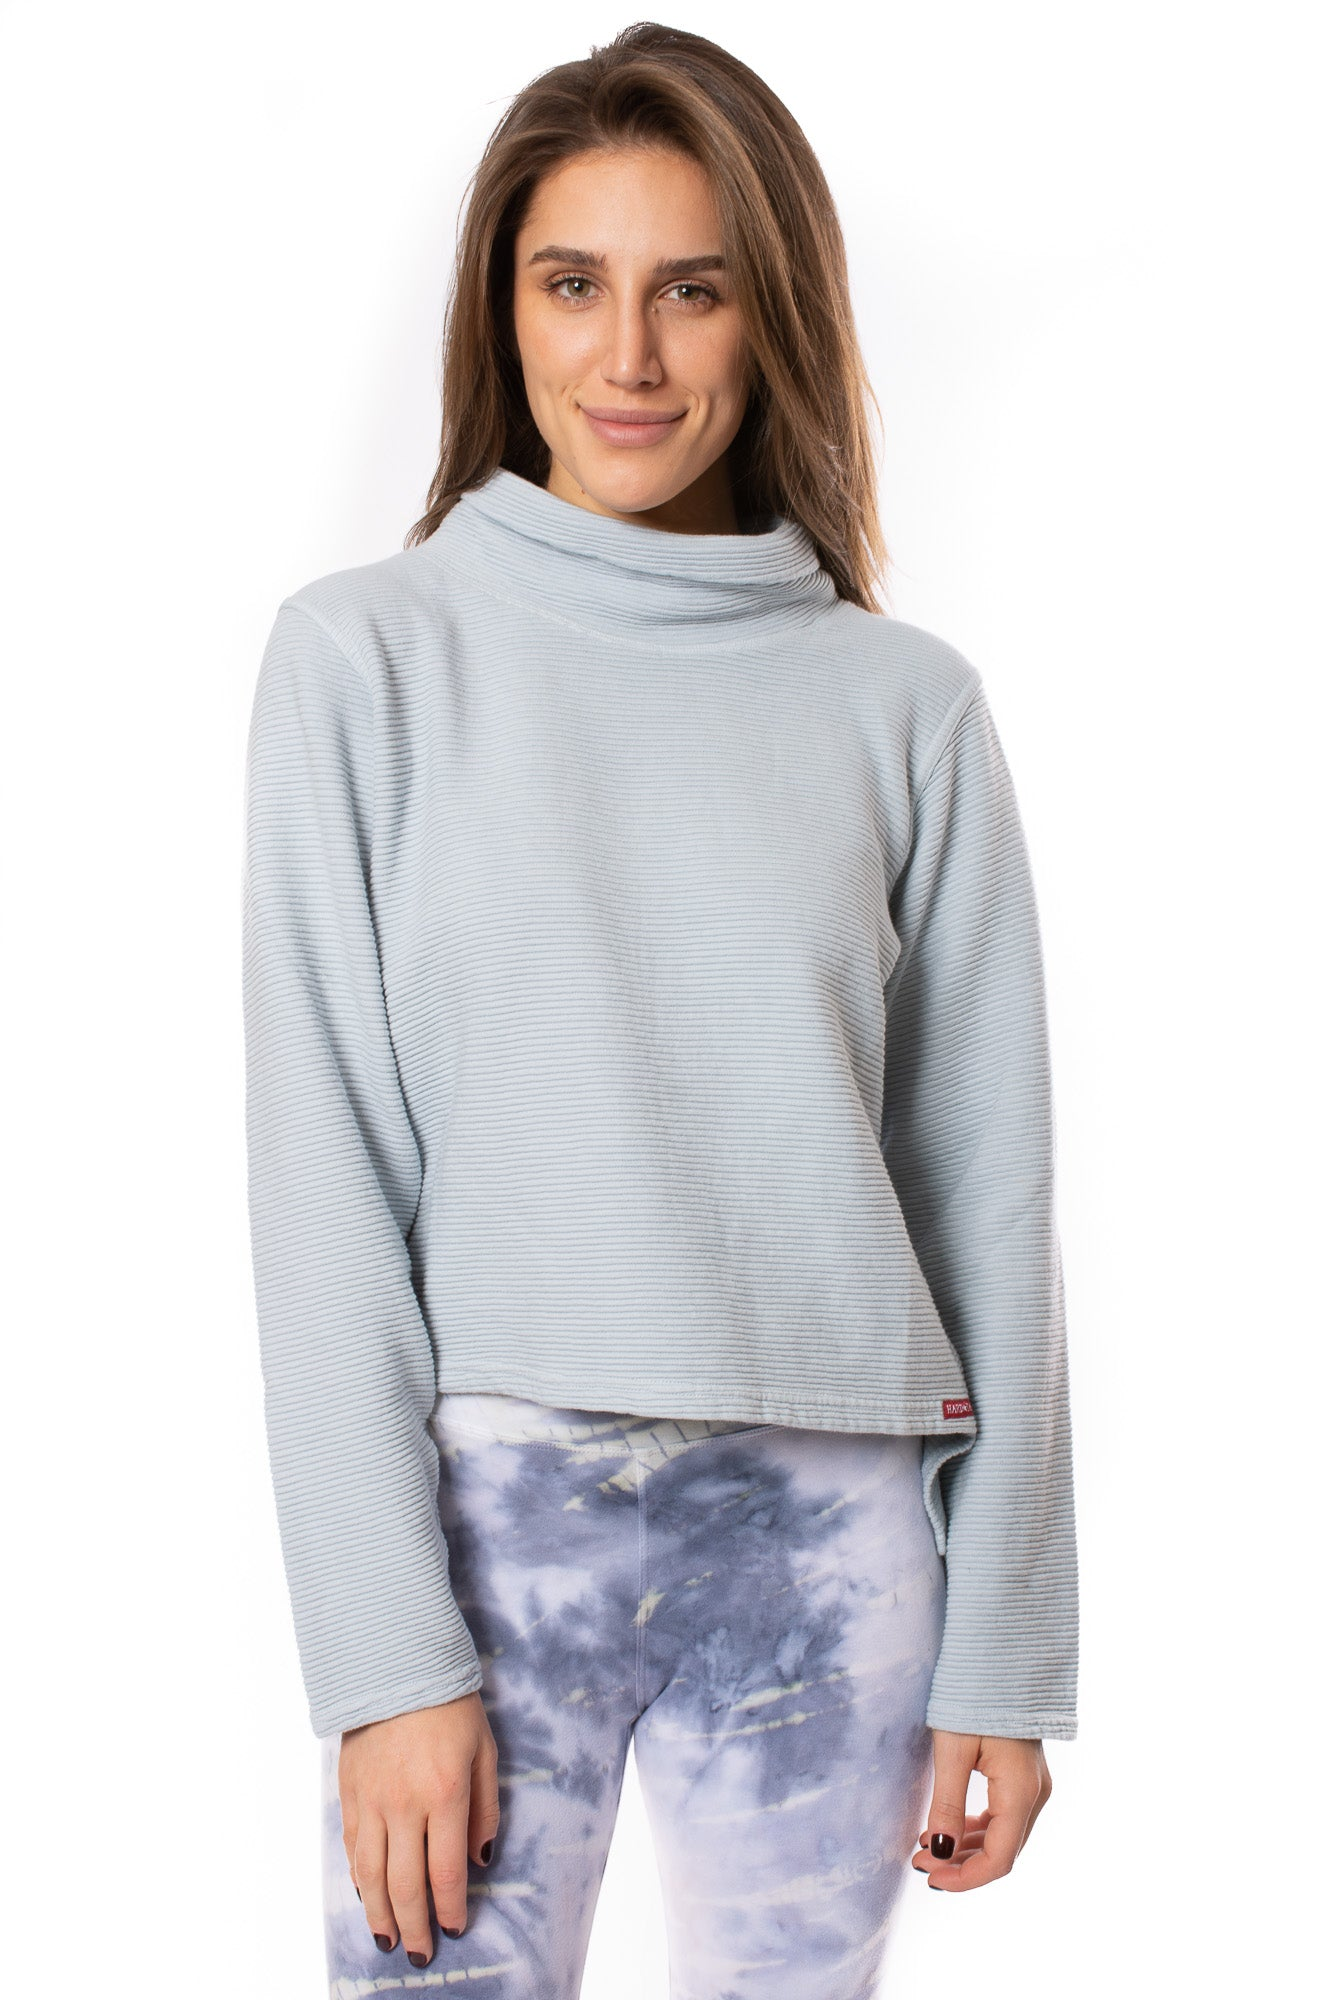 Hard Tail Forever - Cowl Neck Pullover (DL-14, Silver Blue) alt view 1